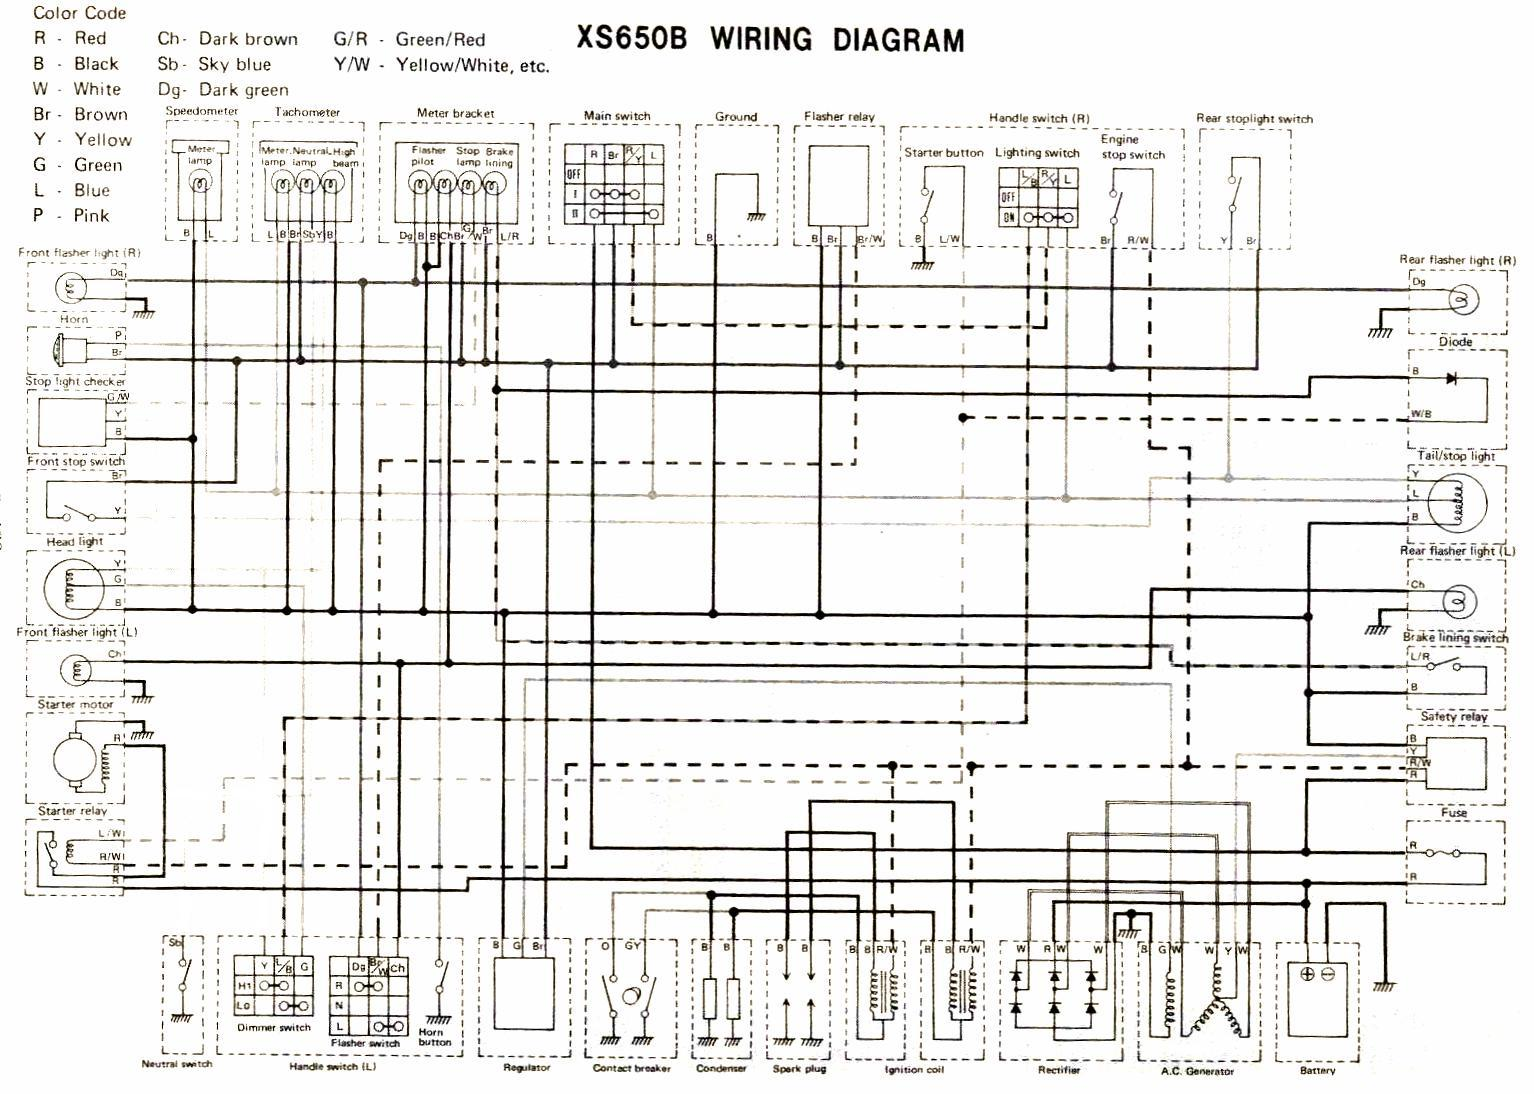 75XS650B wiring diagrams 2007 yamaha r6 wiring diagram at alyssarenee.co